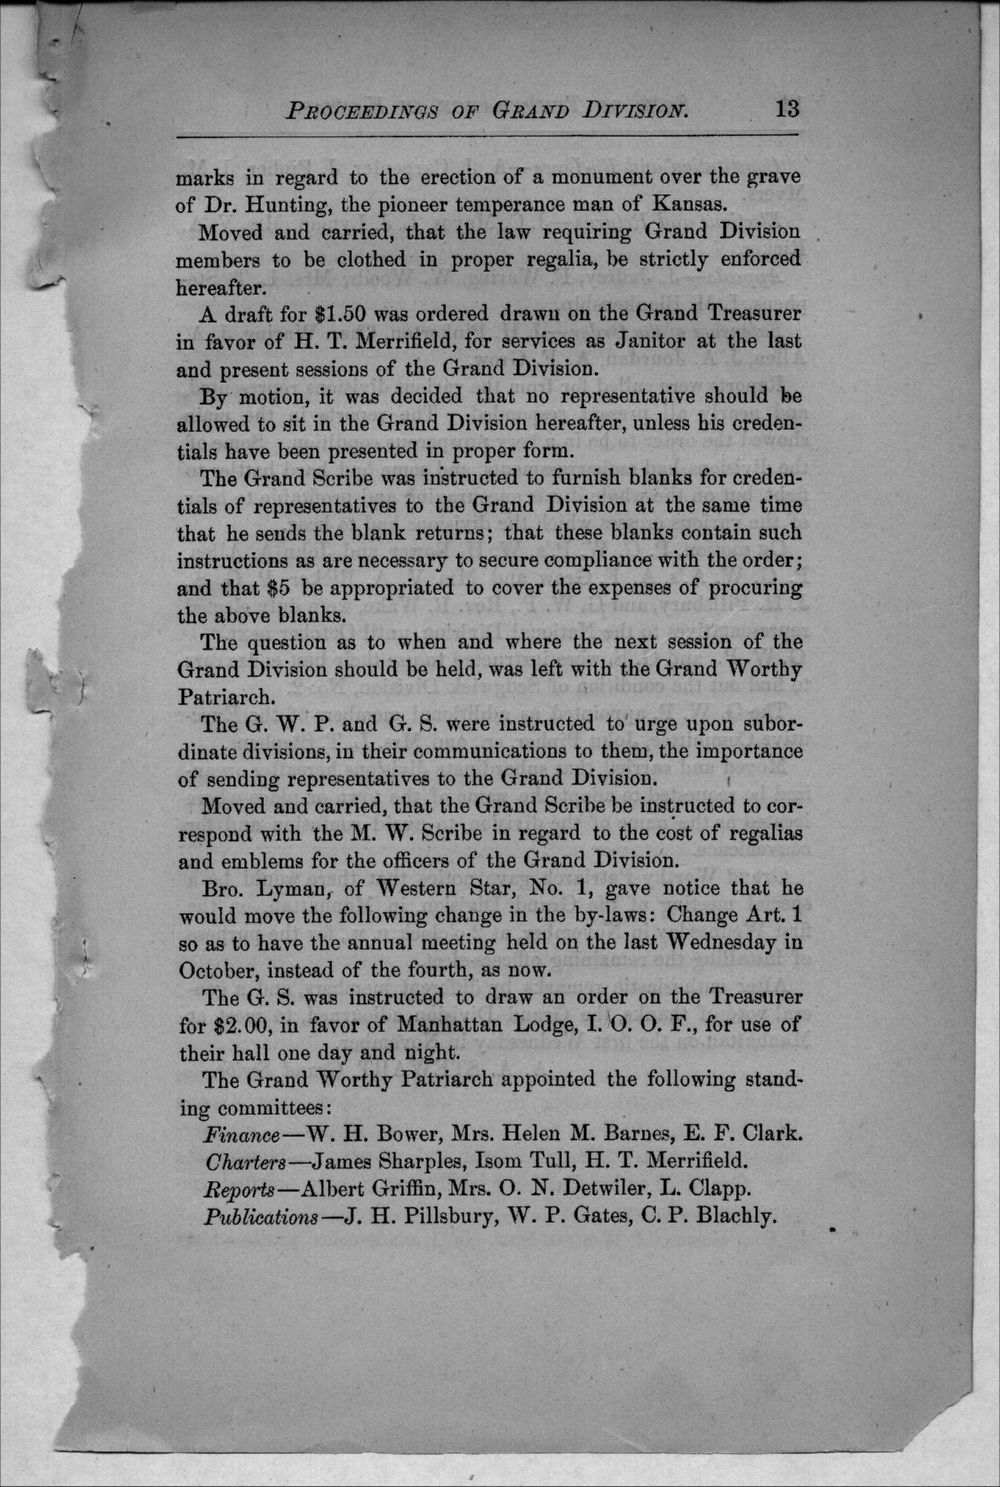 Journal of proceedings of the Grand Division of the Sons of Temperance of Kansas - 13